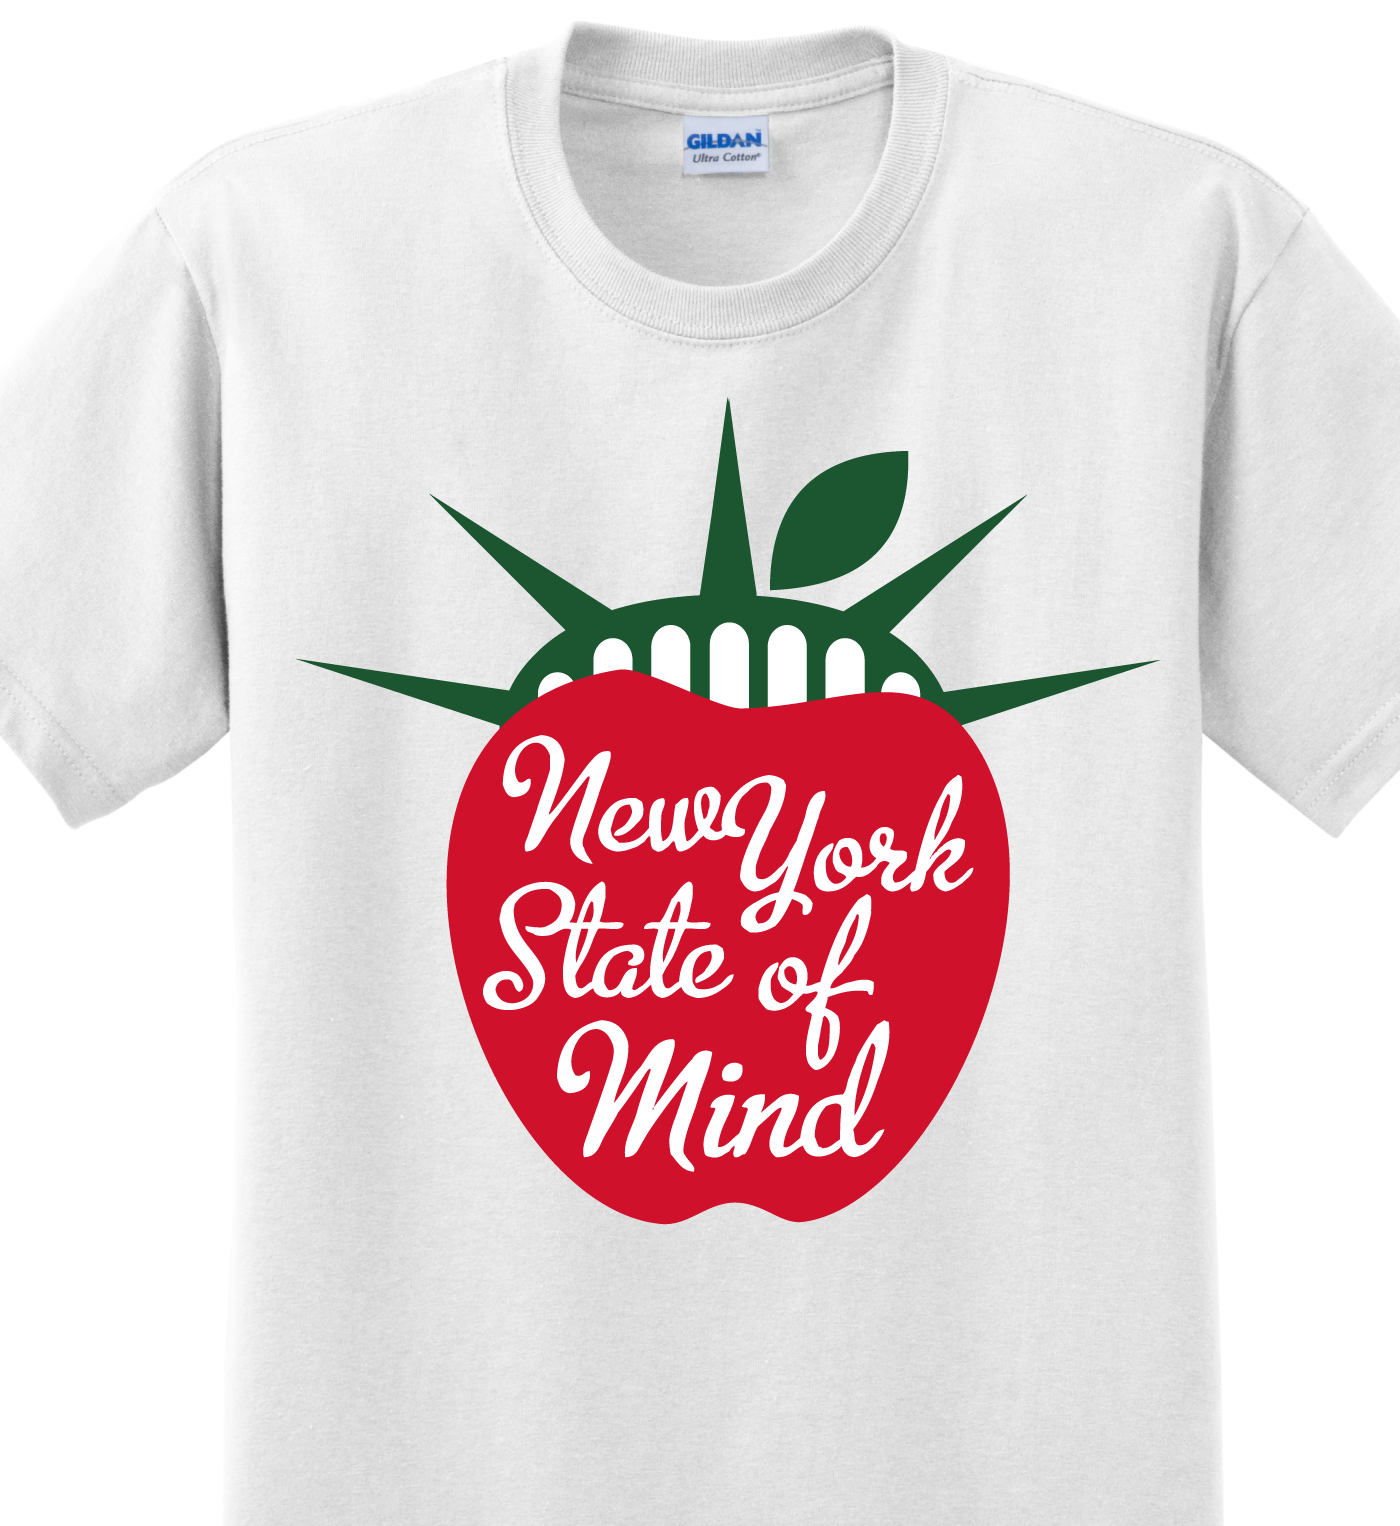 Wholesale T Shirts In New York City - Joe Maloy 70efe898d2d